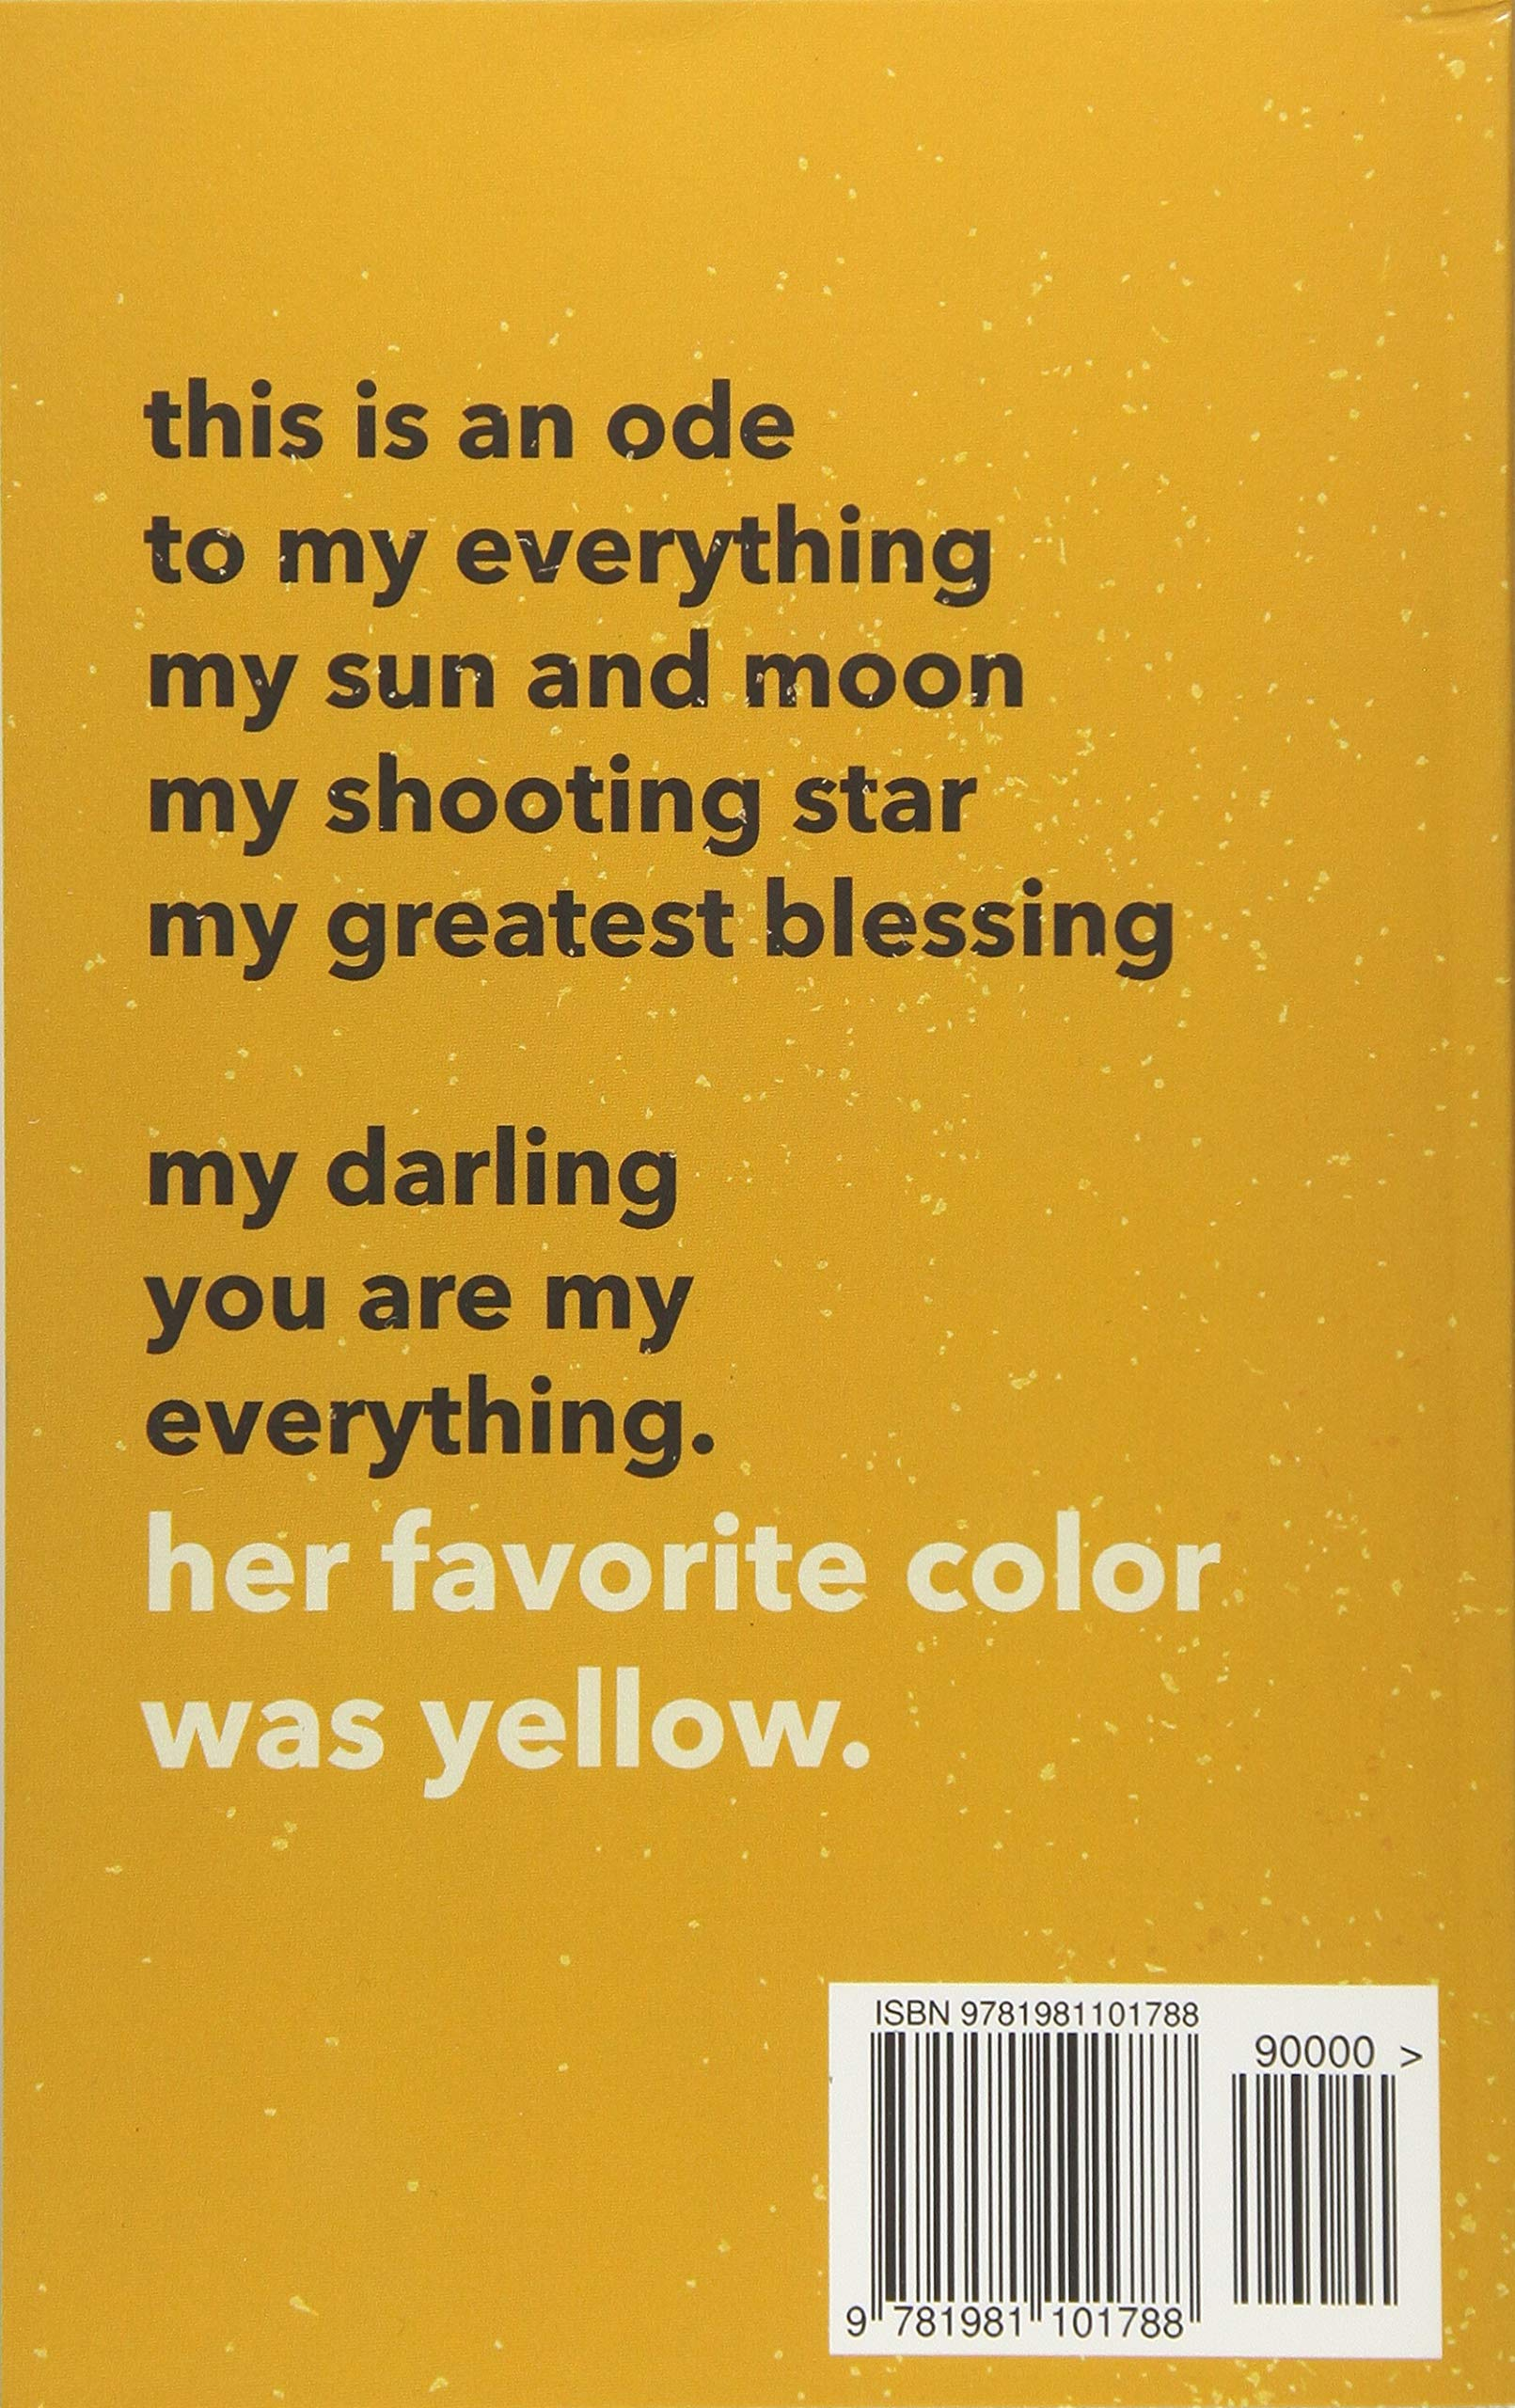 Her Favorite Color Was Yellow: Edgar Holmes: 9781981101788